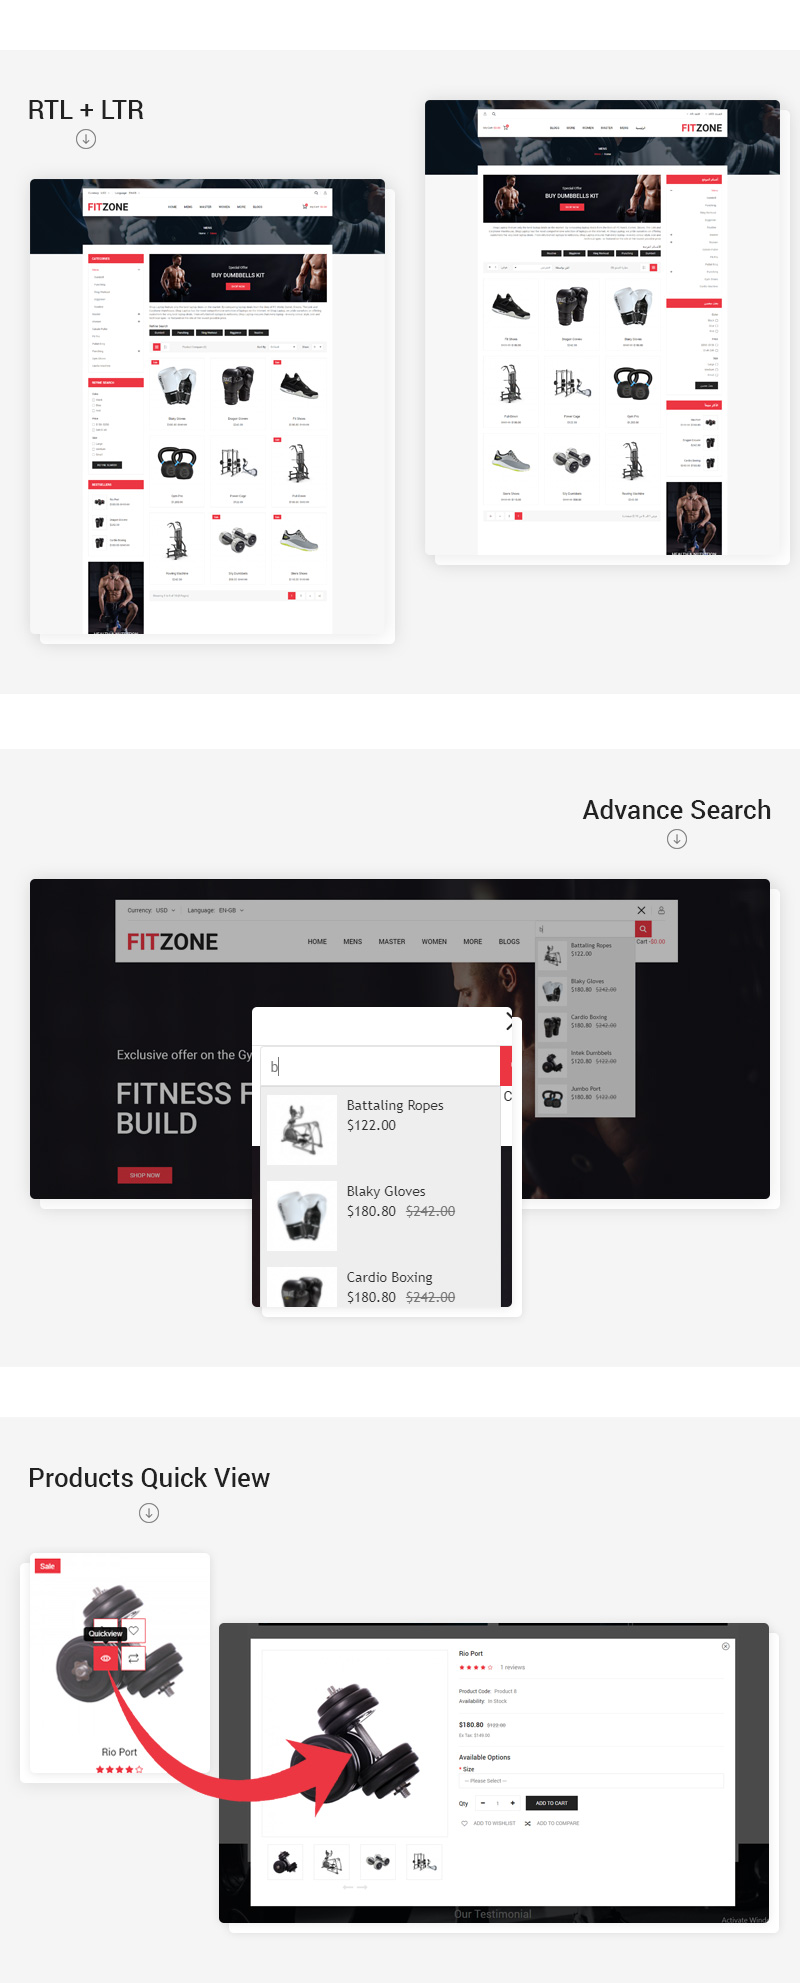 fitzone-features-2.jpg